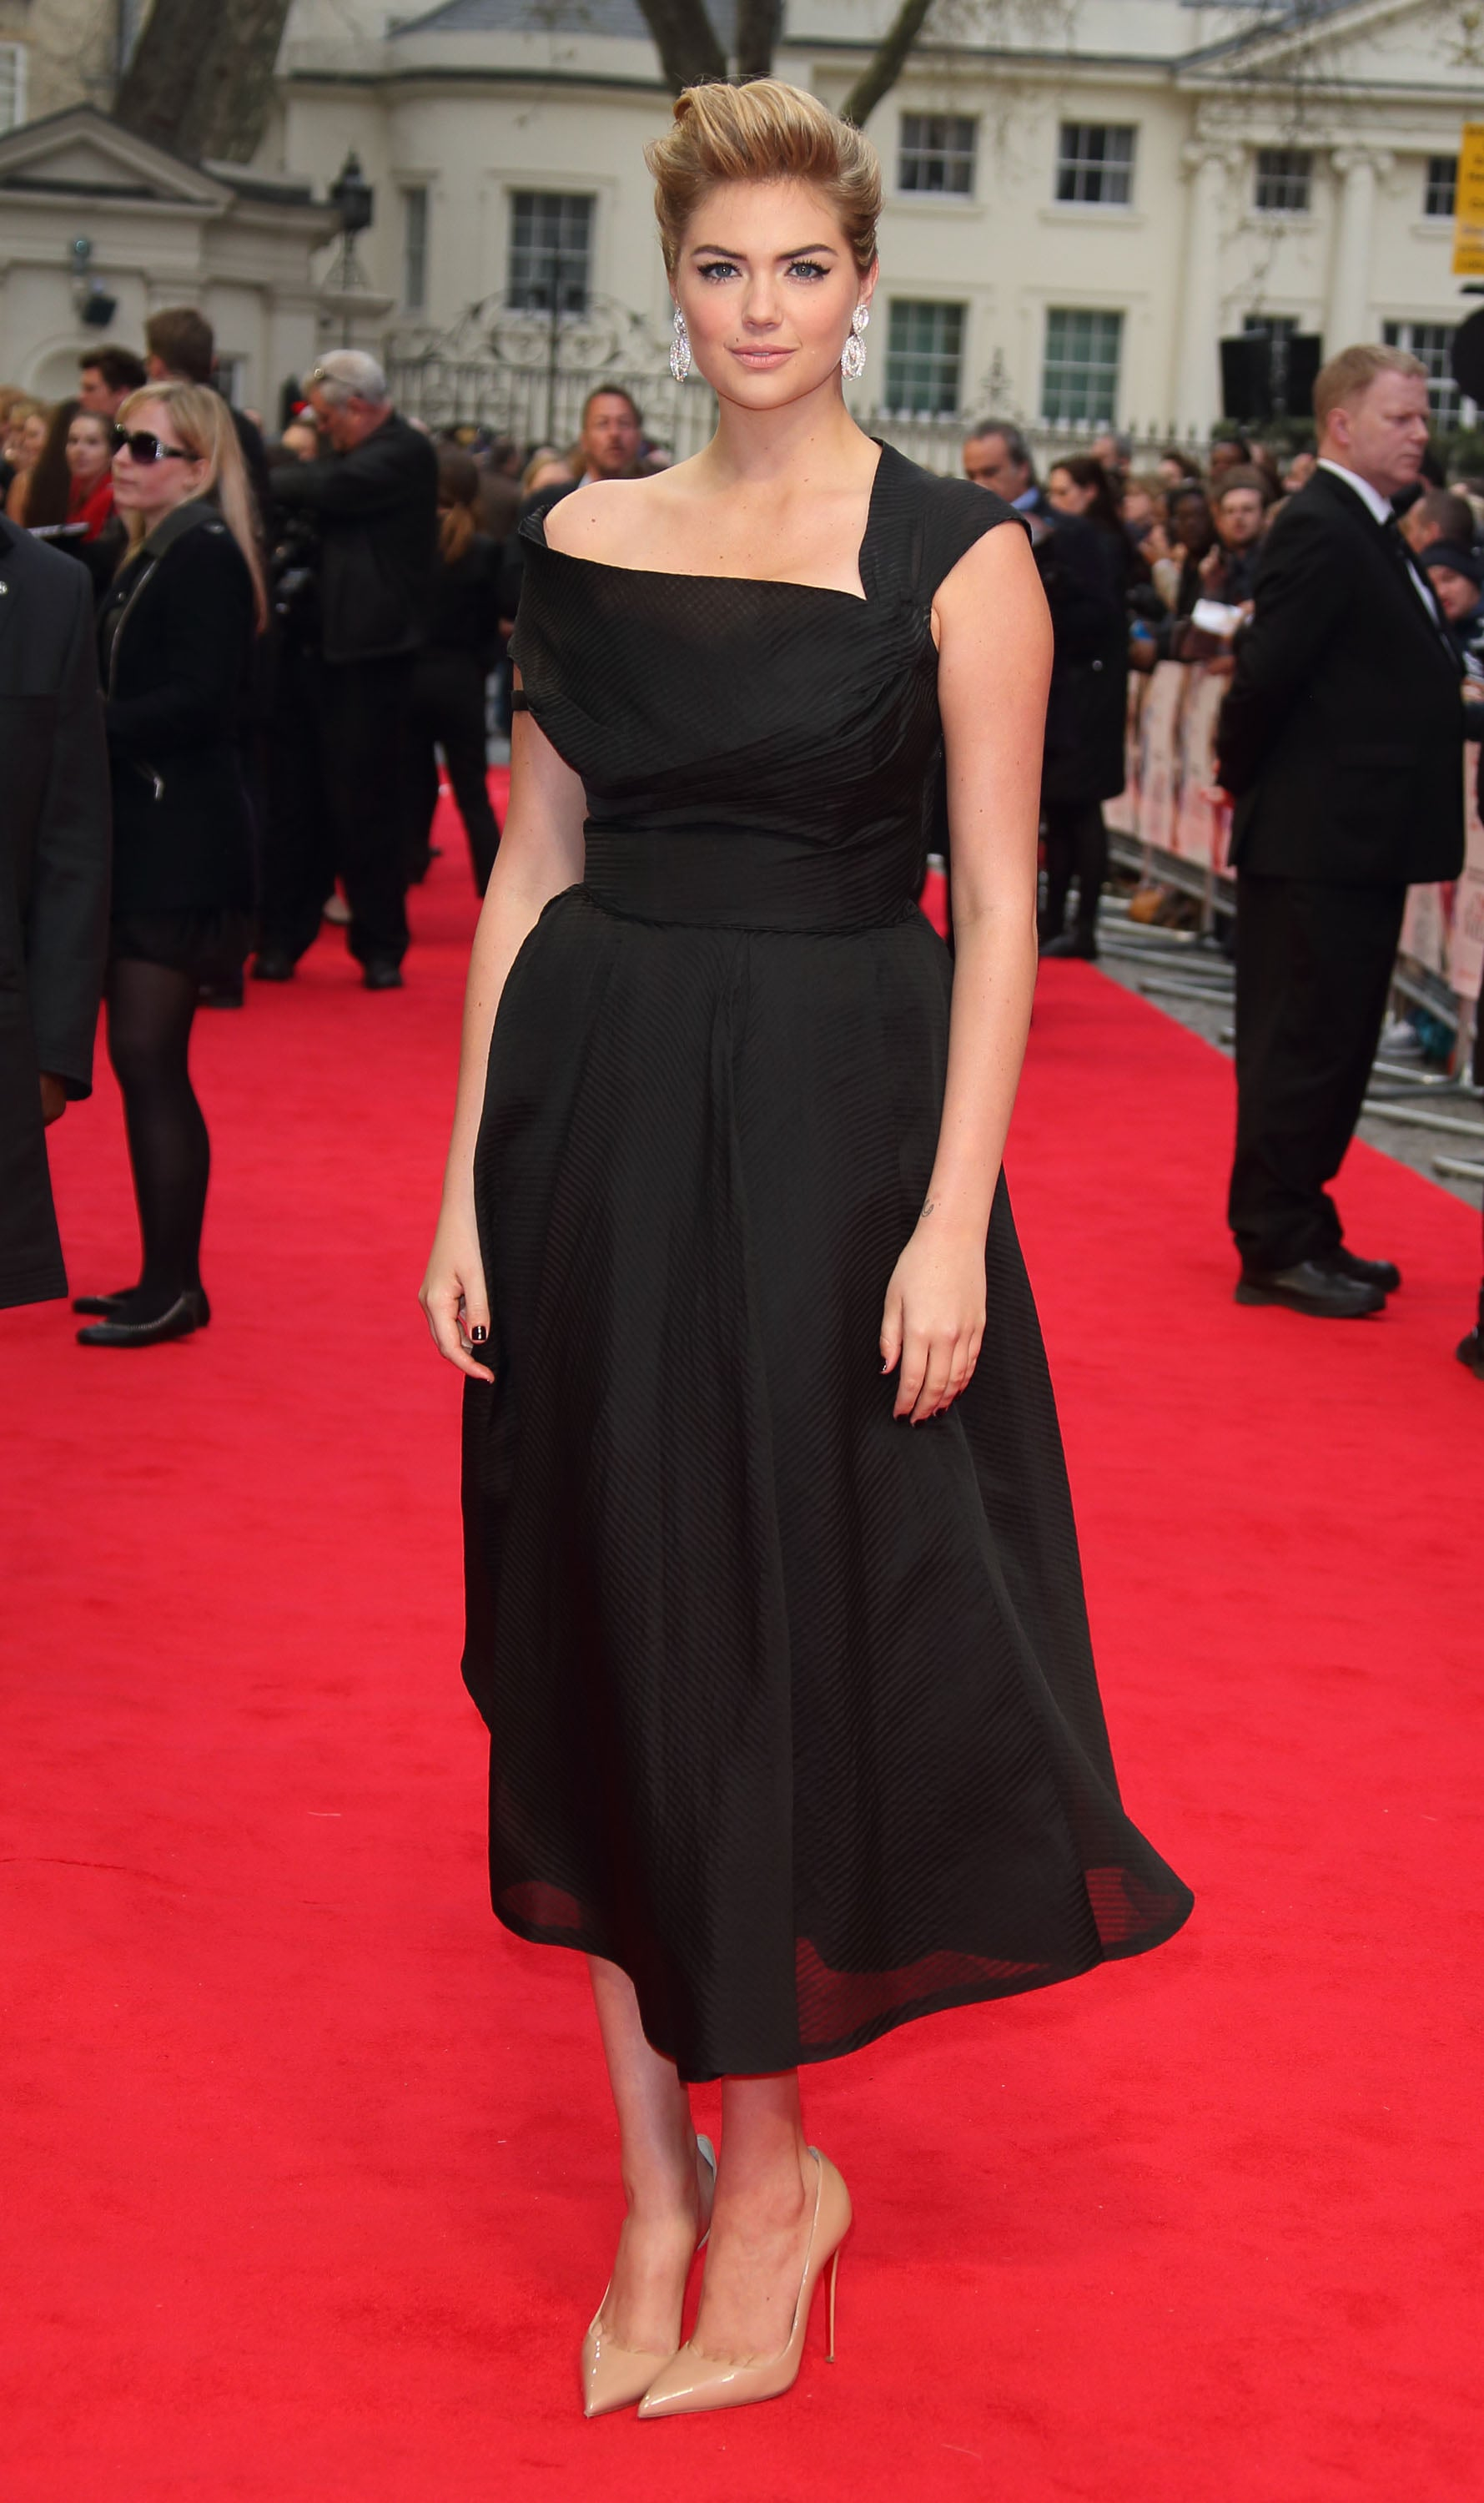 Kate Upton at the London Premiere of The Other Woman